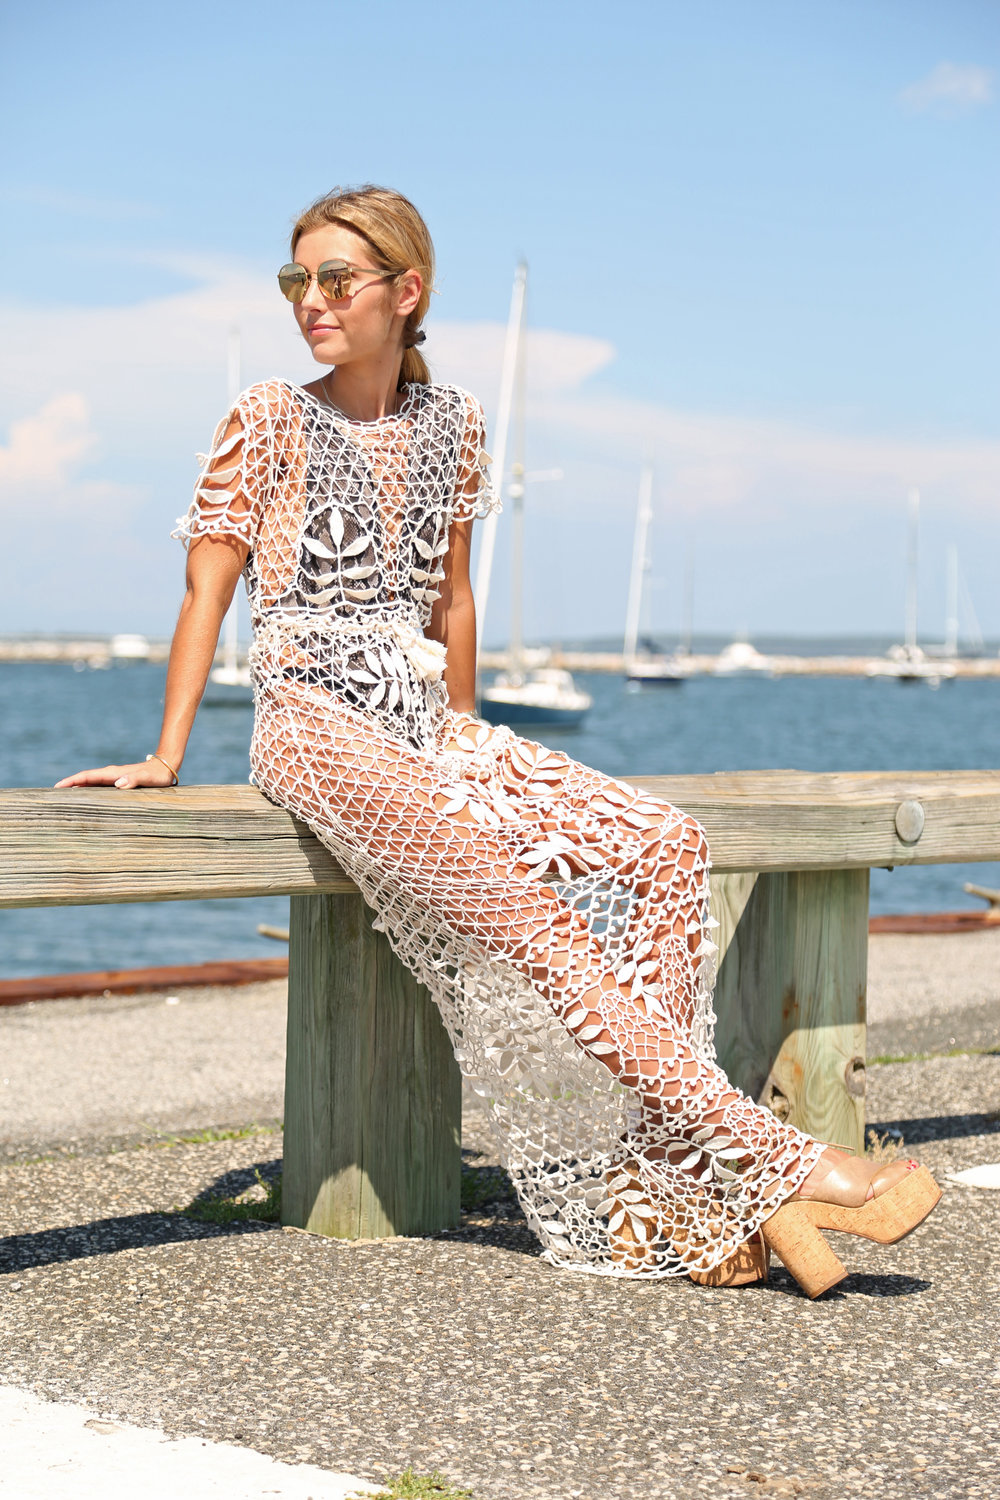 CHARLOTTE BICKLEY YIN 2MY YANG BEACH VIBES FASHION BLOGGER